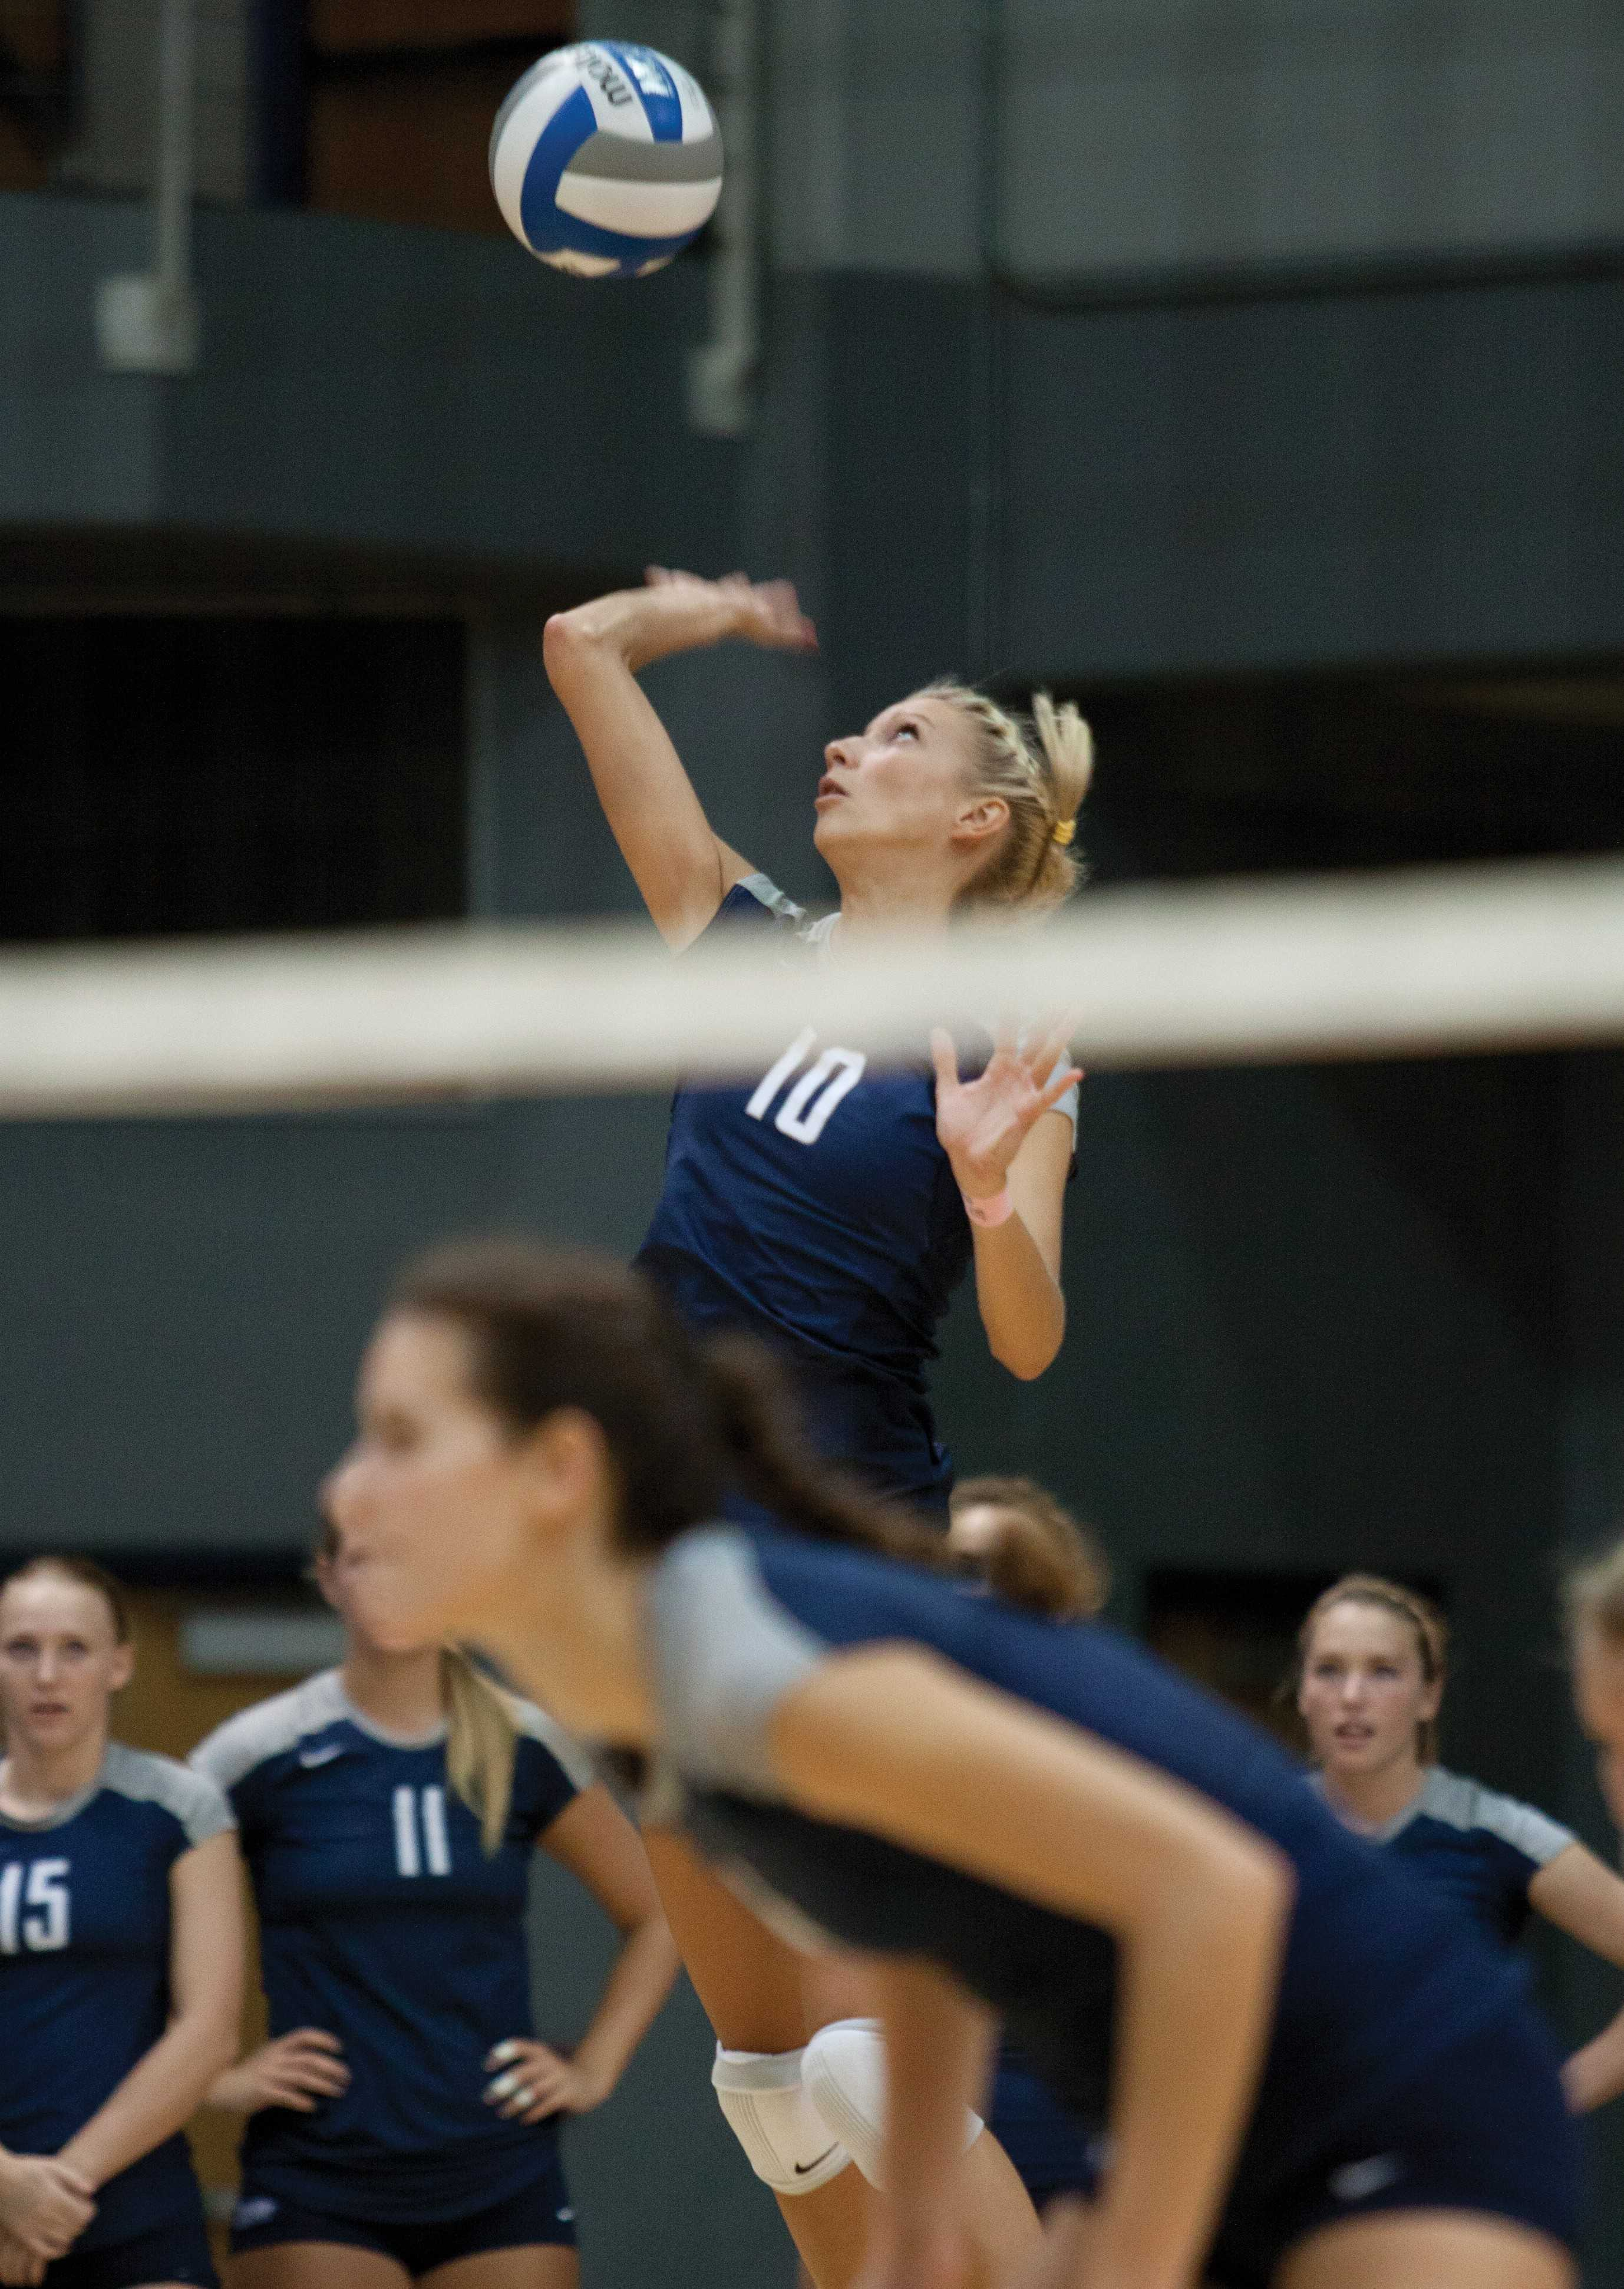 UNF's Dagnija Medina (10) elevates for a serve.